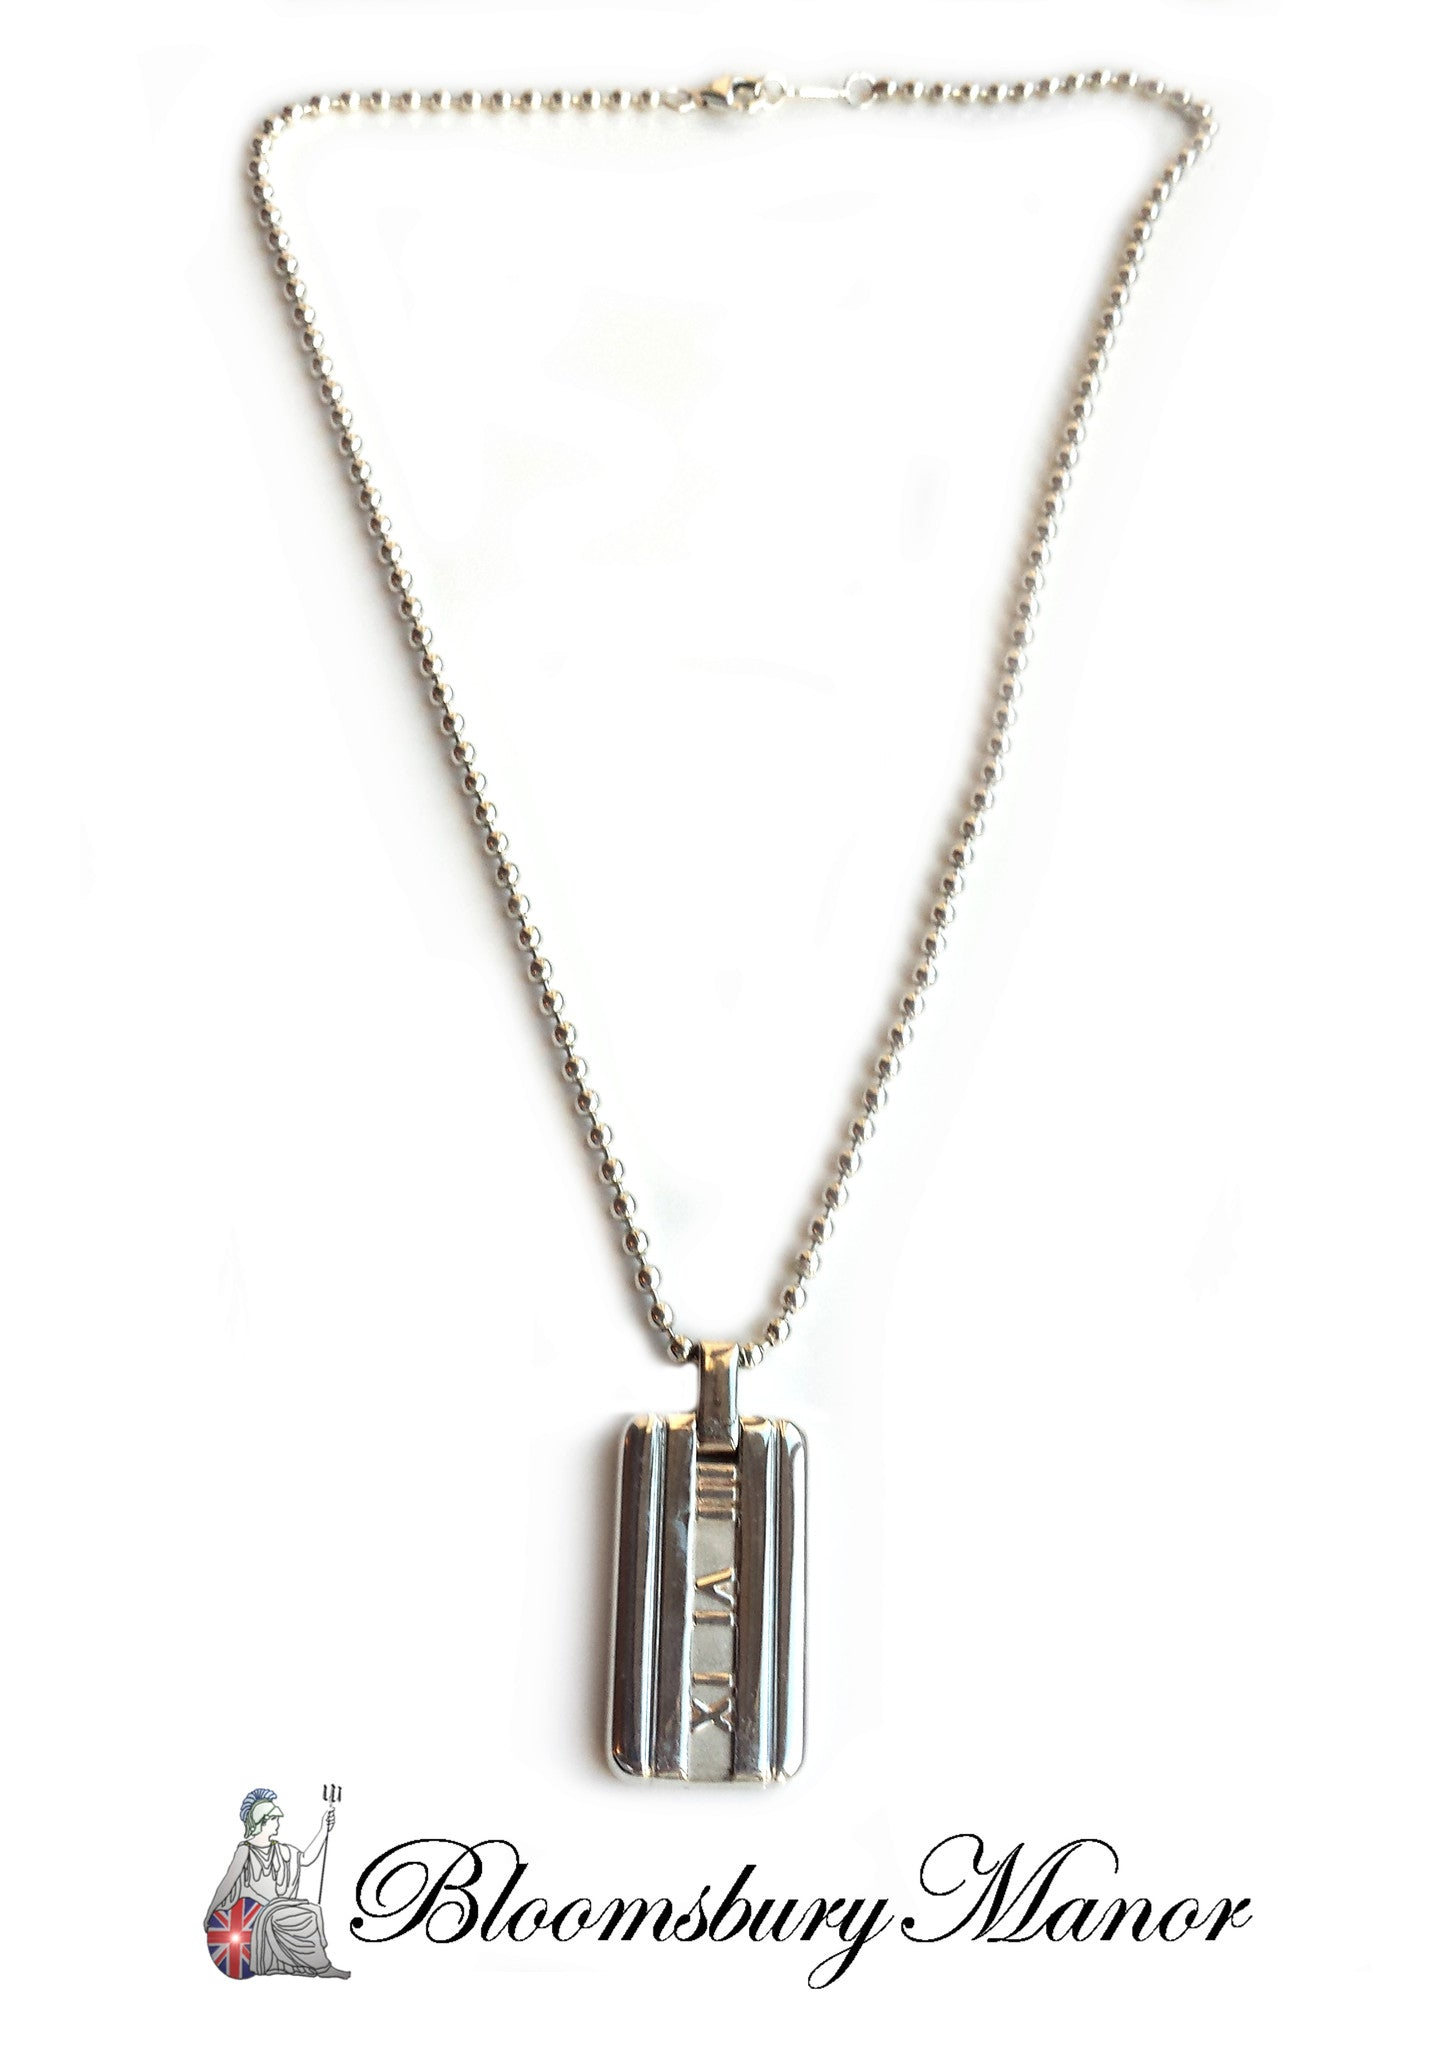 cba7bba13 Tiffany & Co. Silver Atlas 'Dog Tag' Necklace on Bead Link Chain ...